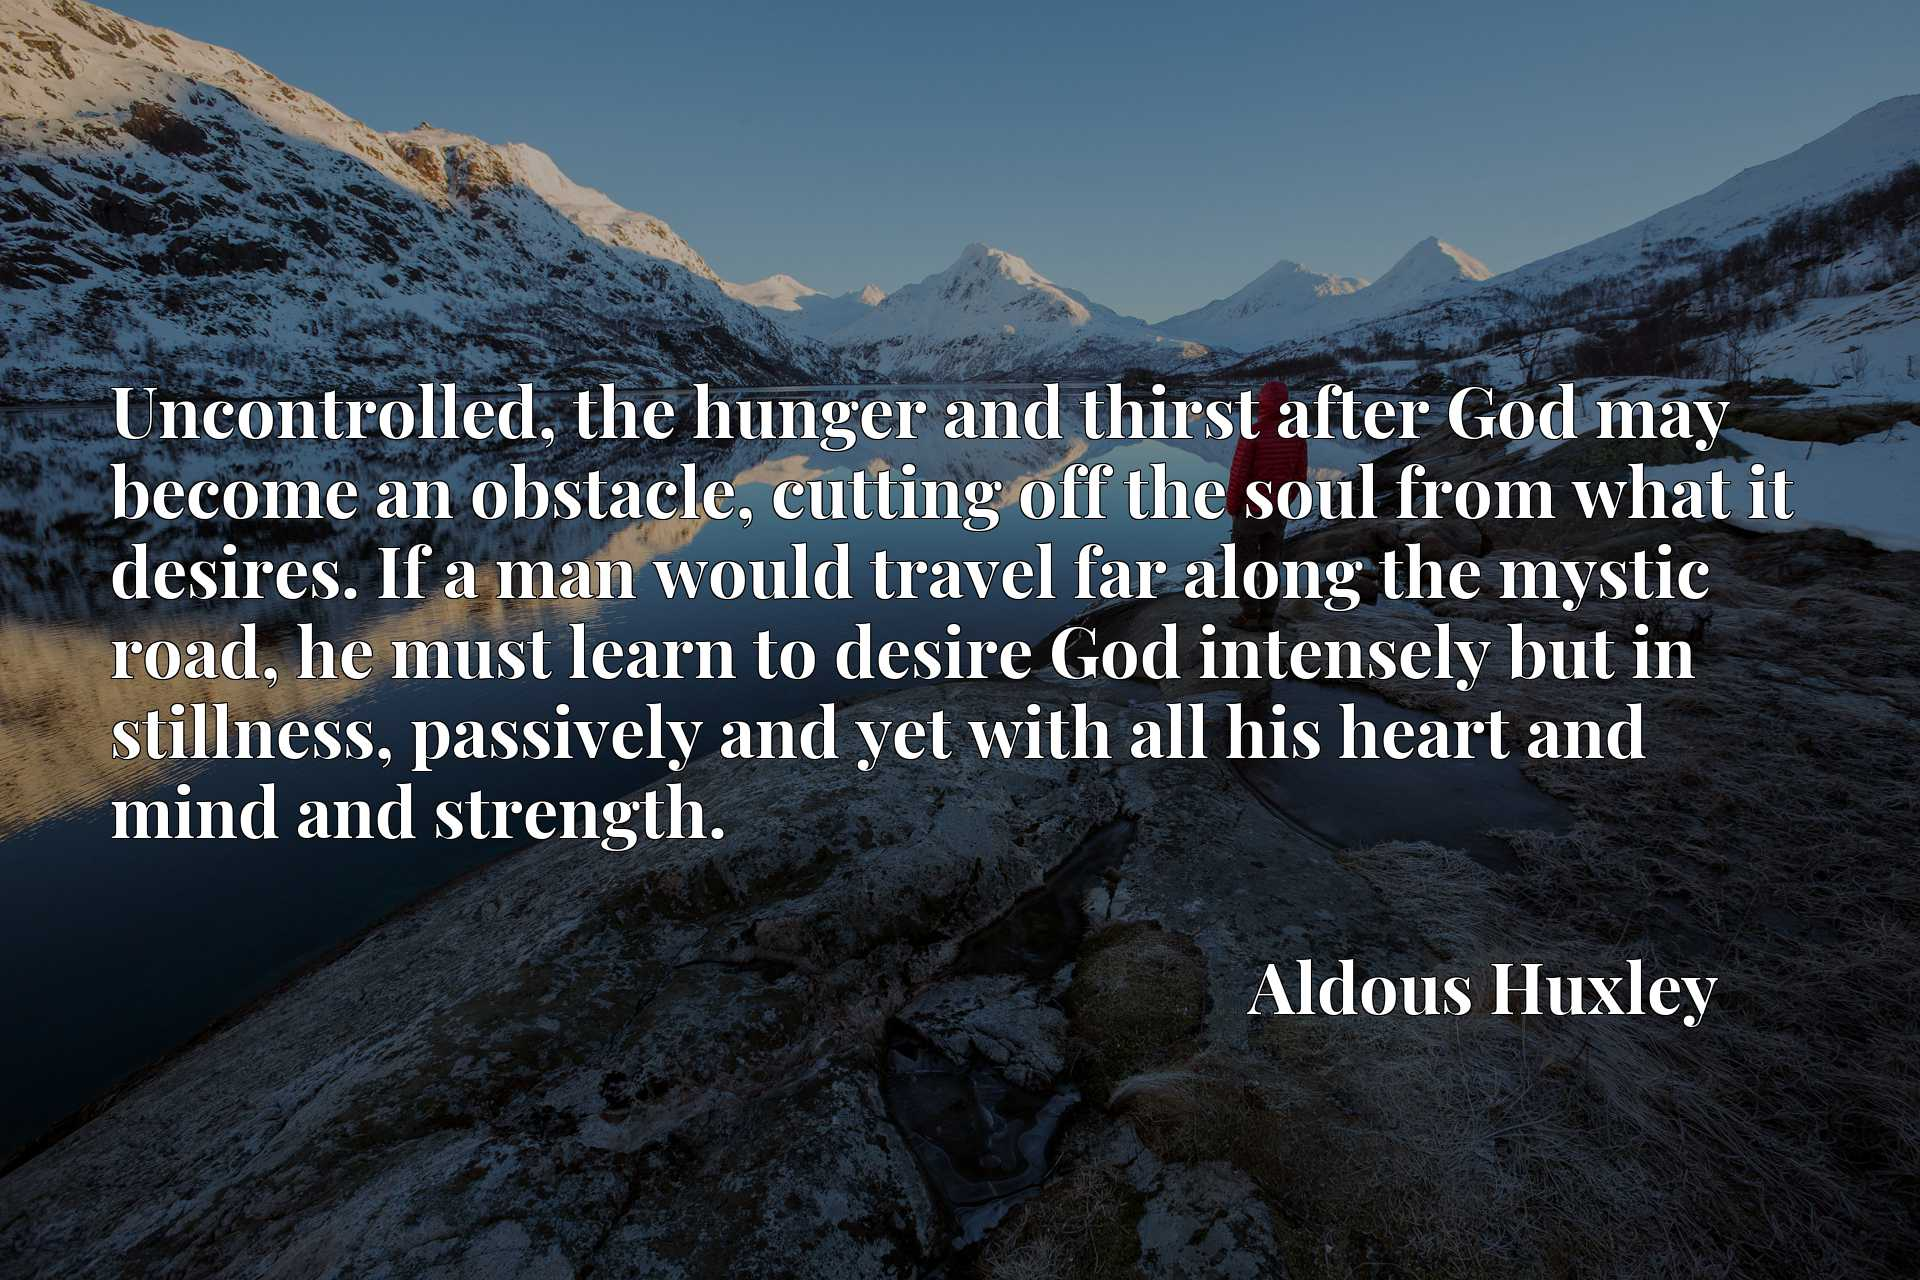 Uncontrolled, the hunger and thirst after God may become an obstacle, cutting off the soul from what it desires. If a man would travel far along the mystic road, he must learn to desire God intensely but in stillness, passively and yet with all his heart and mind and strength.